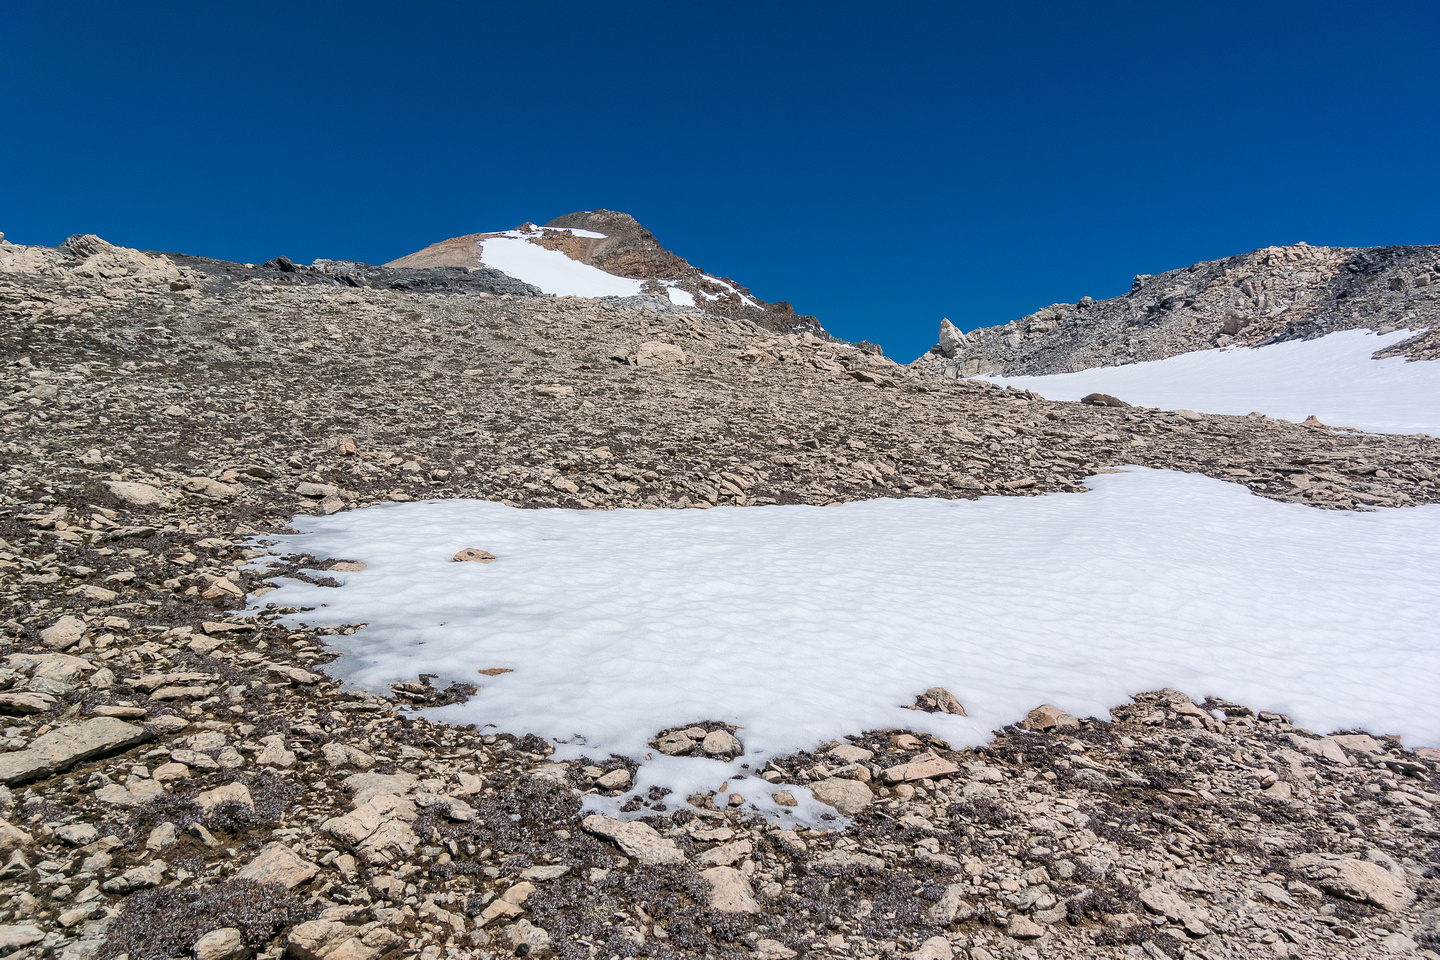 Scree slopes to the summit.